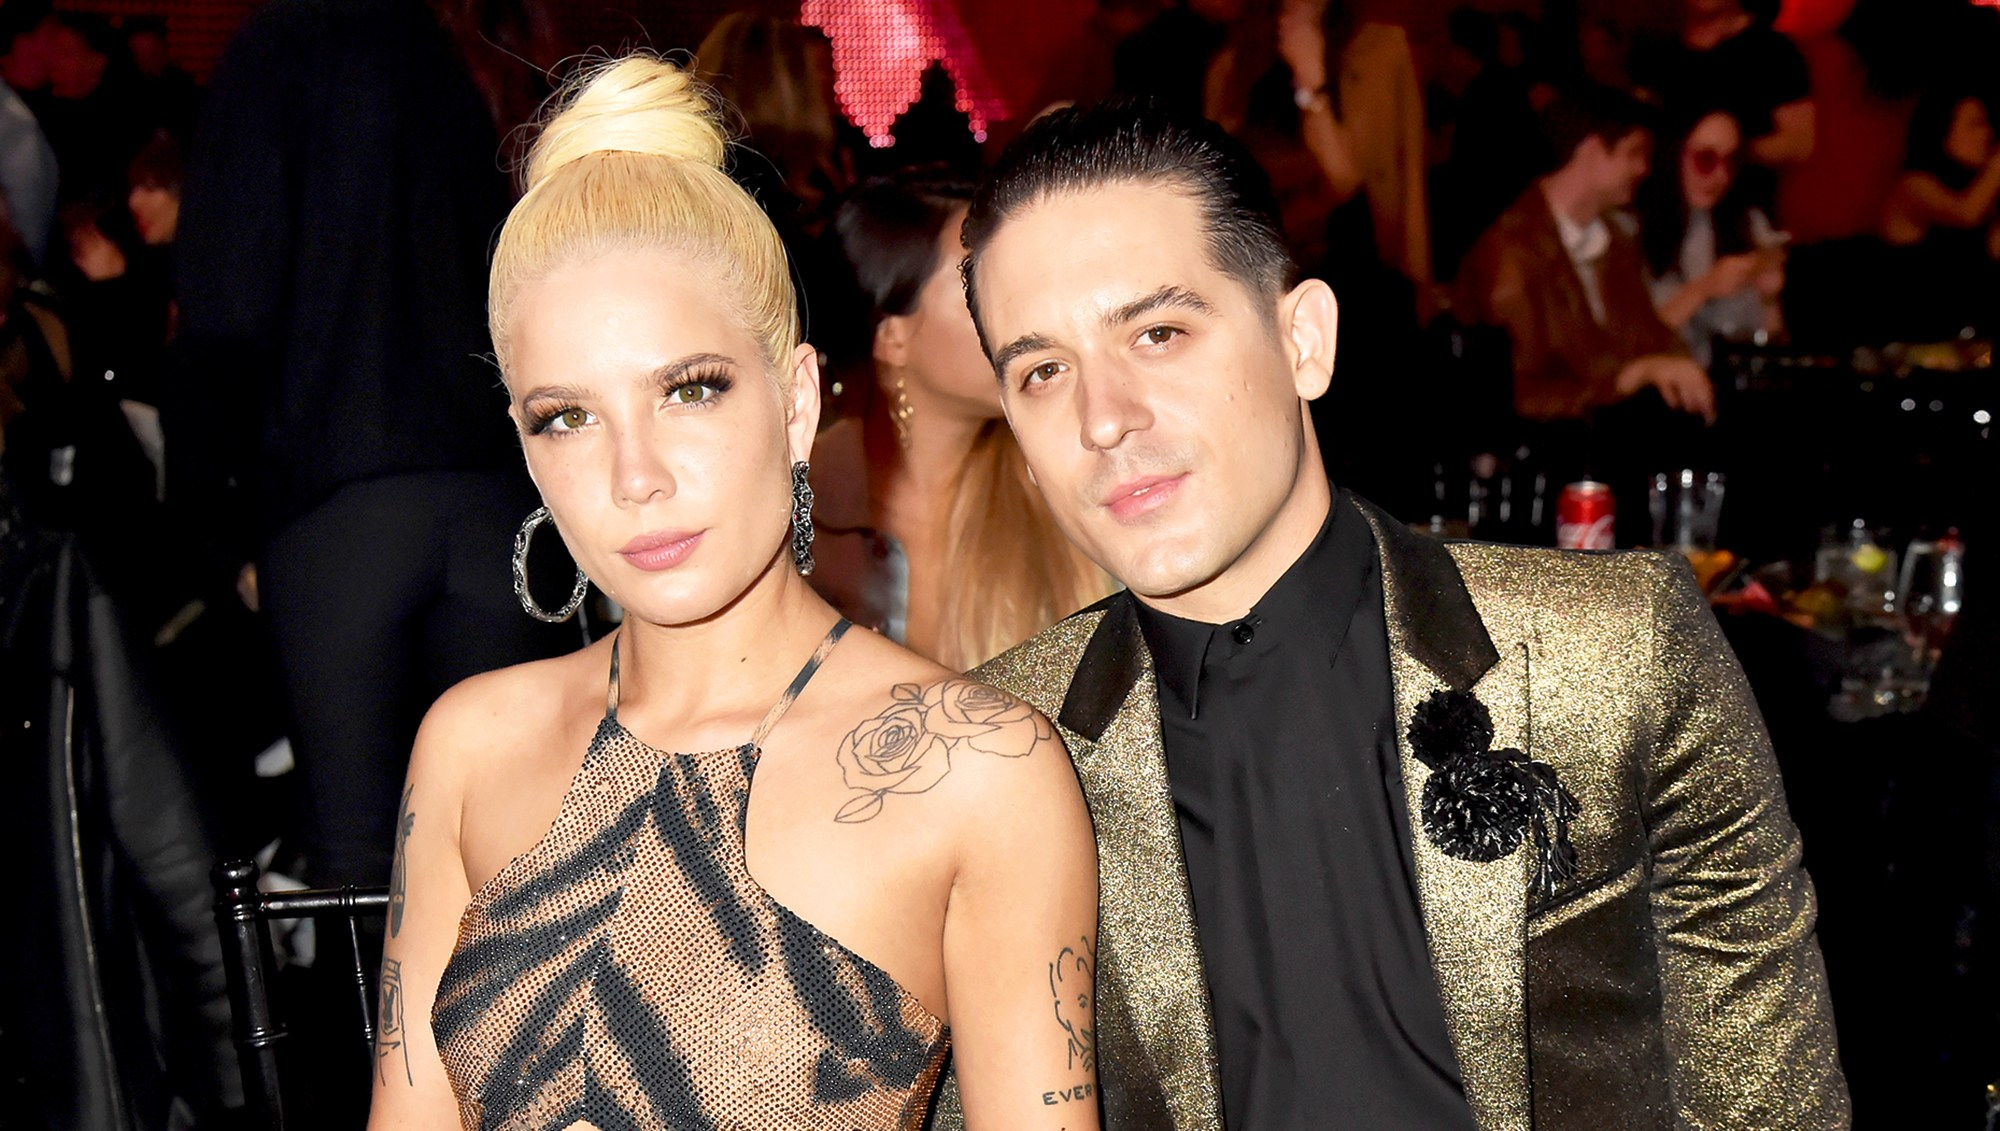 Halsey and G-Eazy attend the 2018 iHeartRadio Music Awards at The Forum on in Inglewood, California.